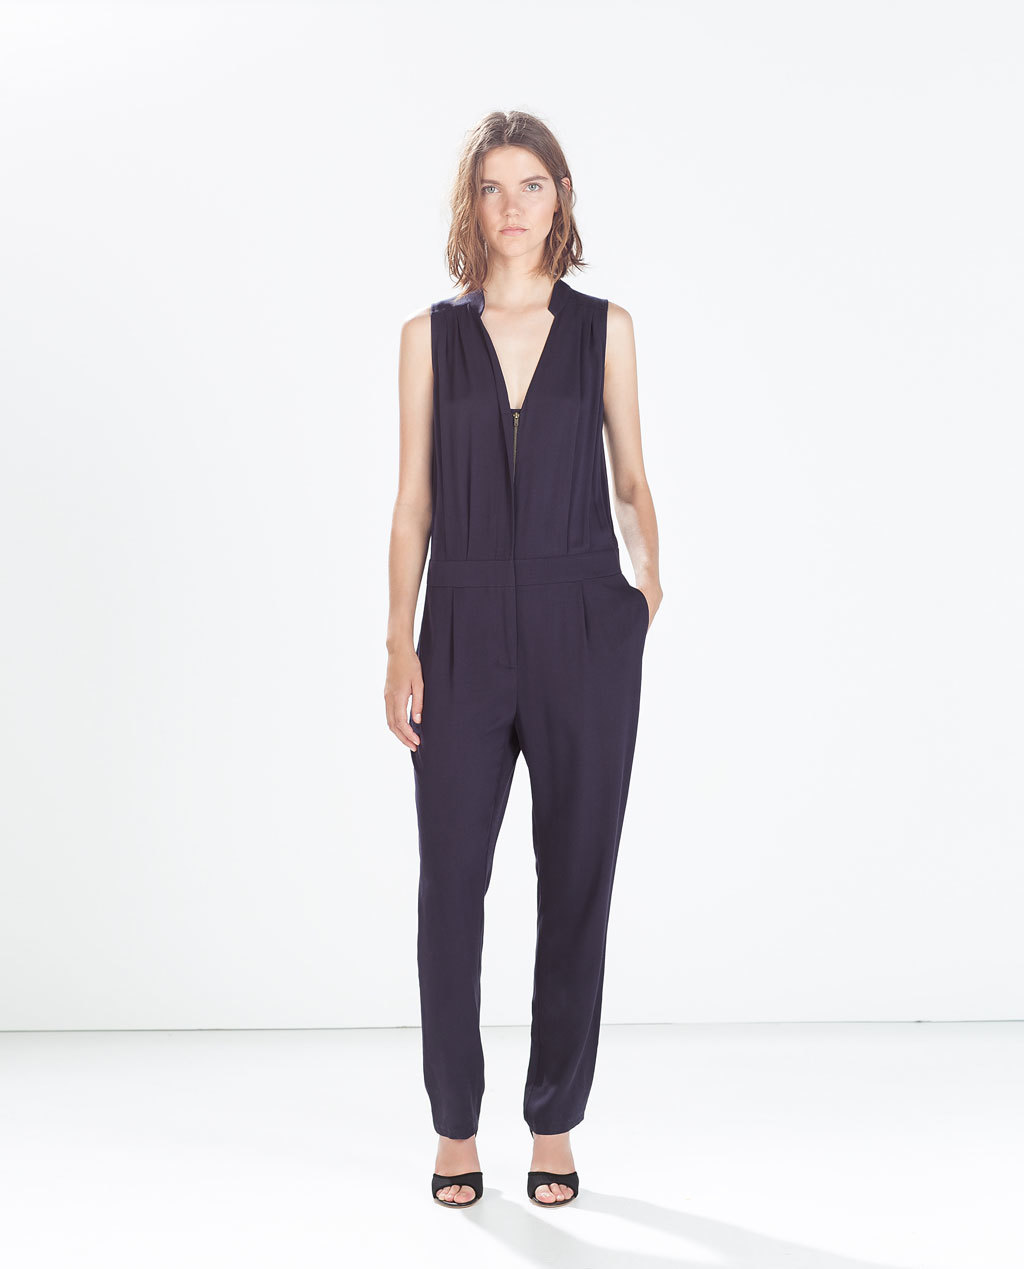 Long Jumpsuit With Zip Neckline - length: standard; neckline: low v-neck; pattern: plain; sleeve style: sleeveless; hip detail: side pockets at hip; predominant colour: navy; occasions: evening; fit: body skimming; fibres: viscose/rayon - 100%; sleeve length: sleeveless; style: jumpsuit; pattern type: fabric; texture group: other - light to midweight; season: a/w 2014